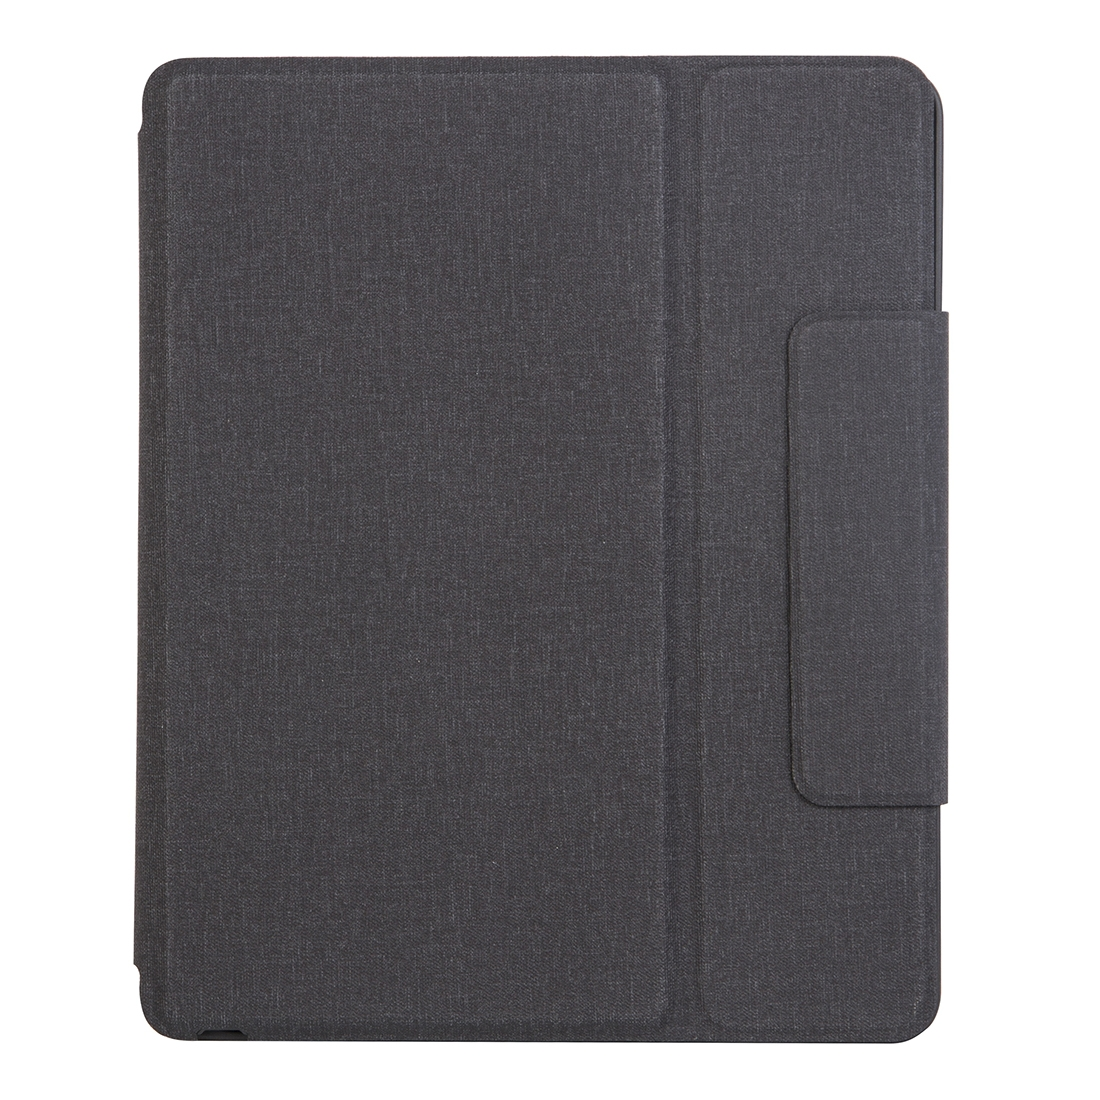 iPad Pro 12.9 Case With Keyboard (2018) With Leather Case & Ultra Thin Keyboard (Black)